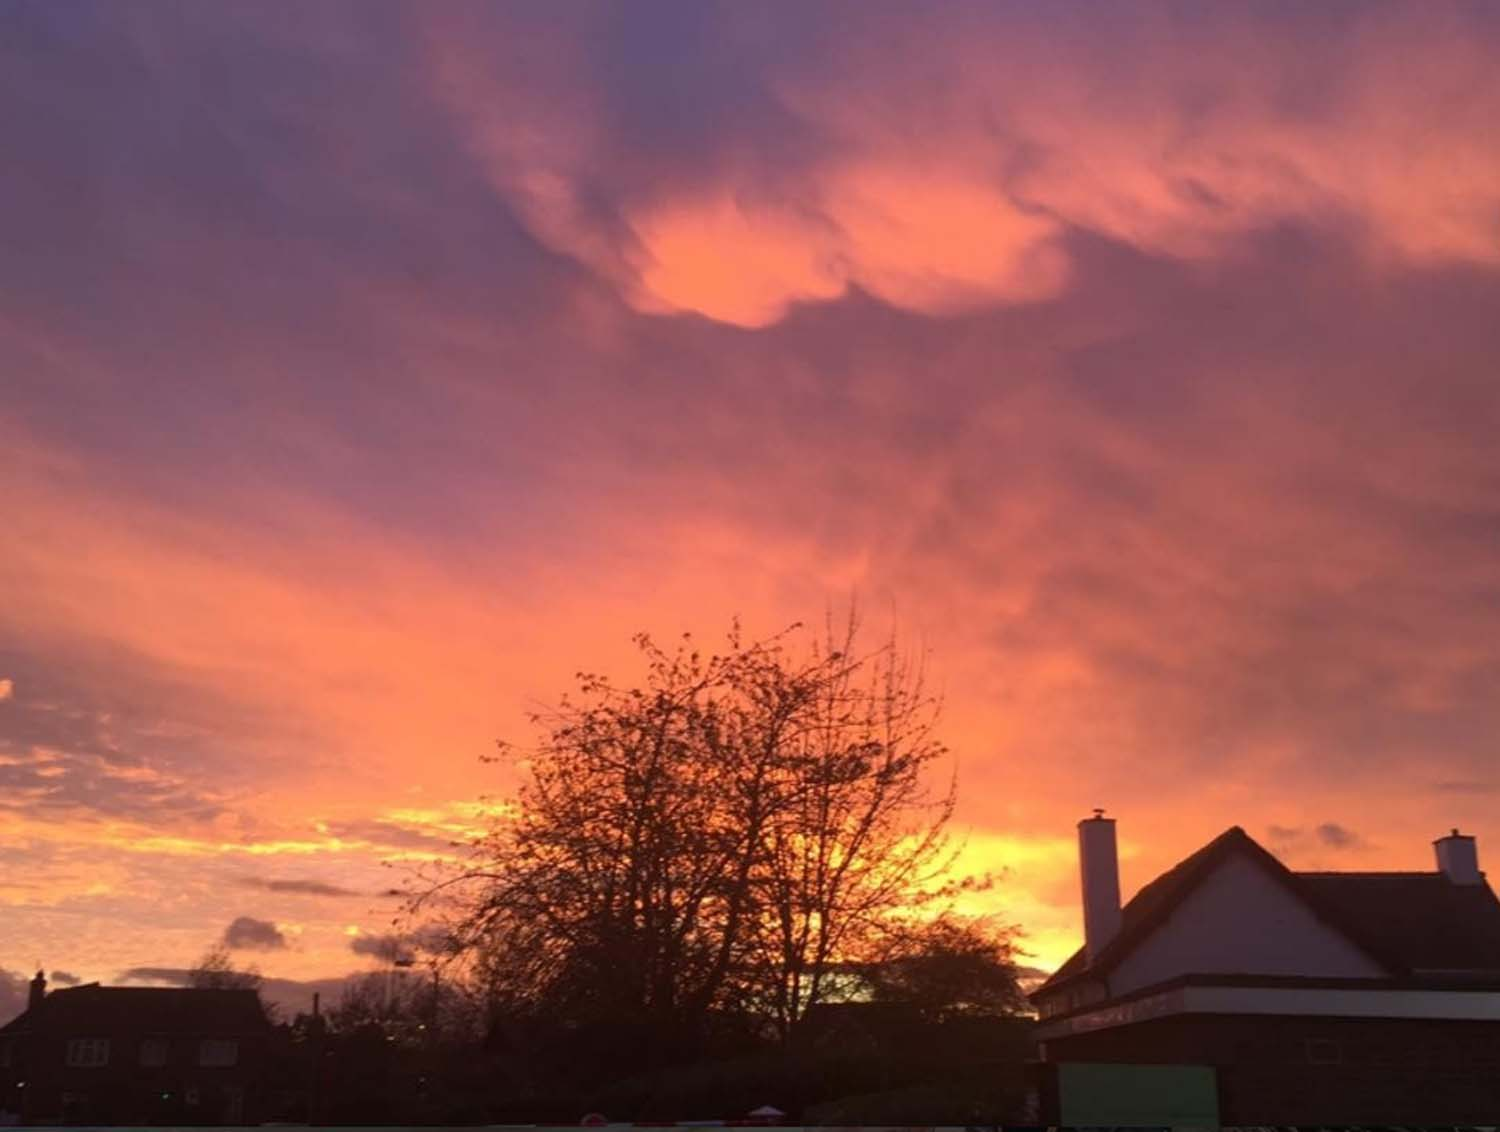 A fiery orange and purple sky over Northallerton on this particular evening